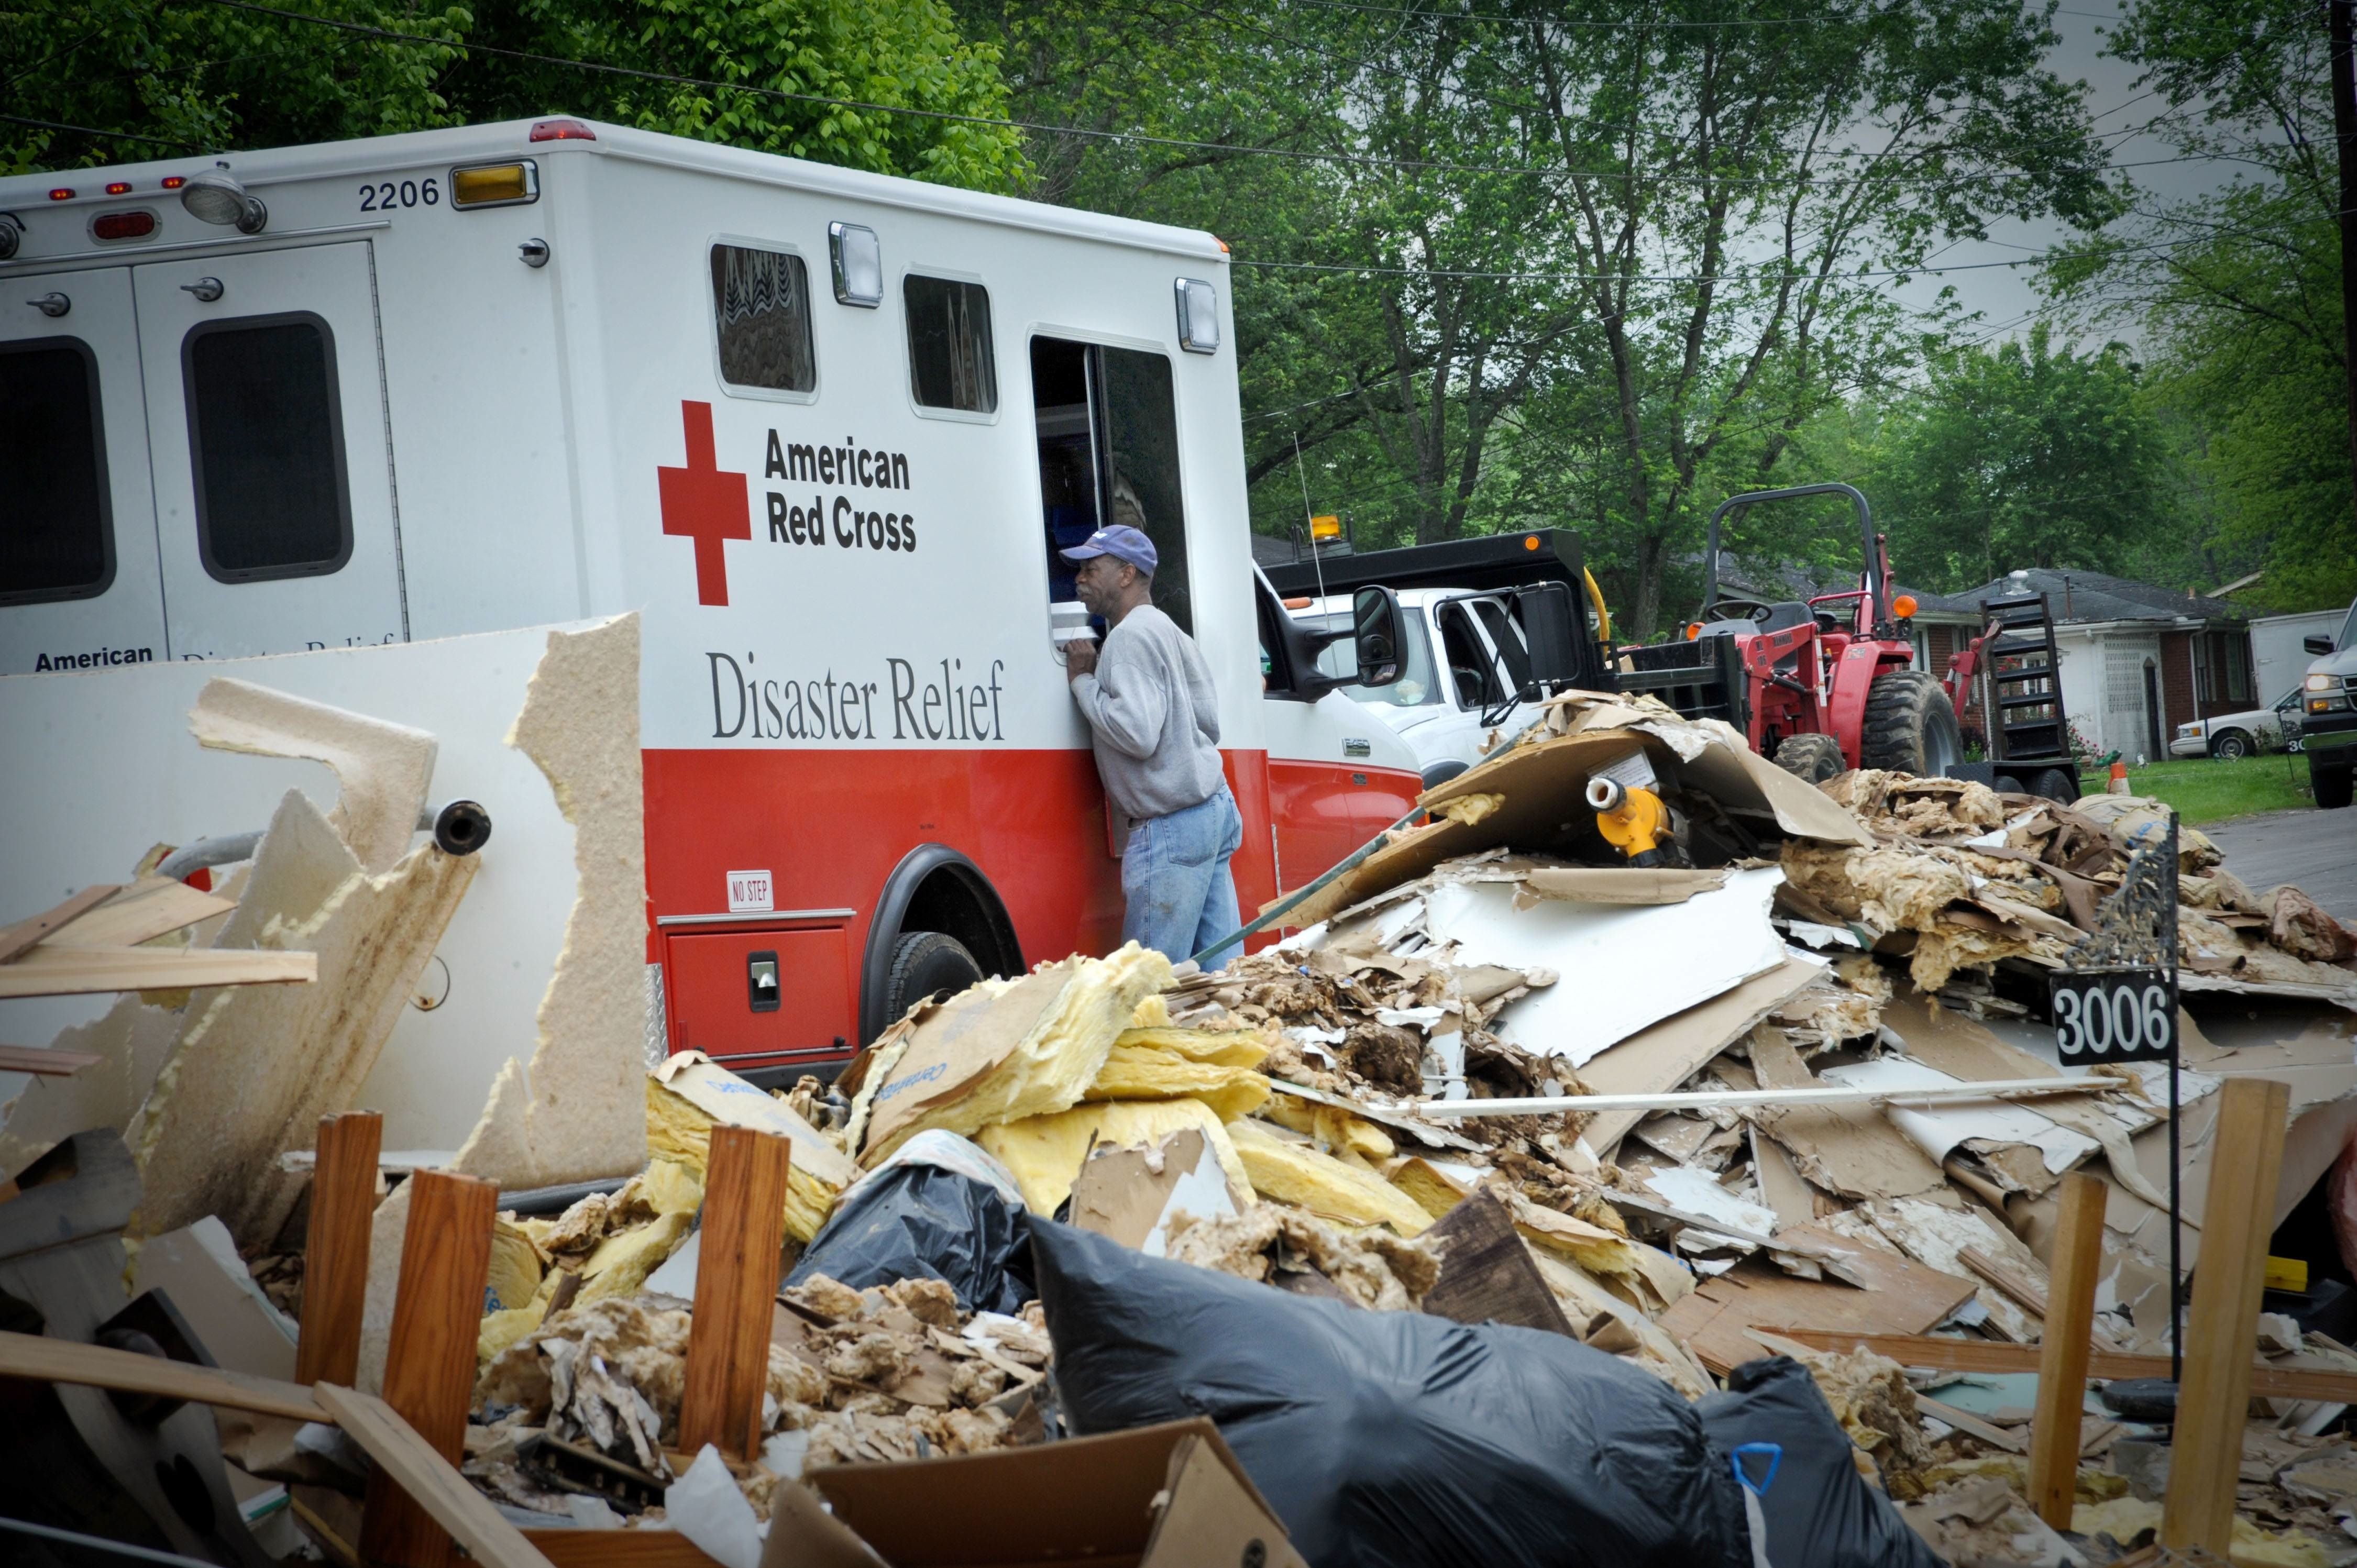 Newtown teens find healing in disaster relief service ...